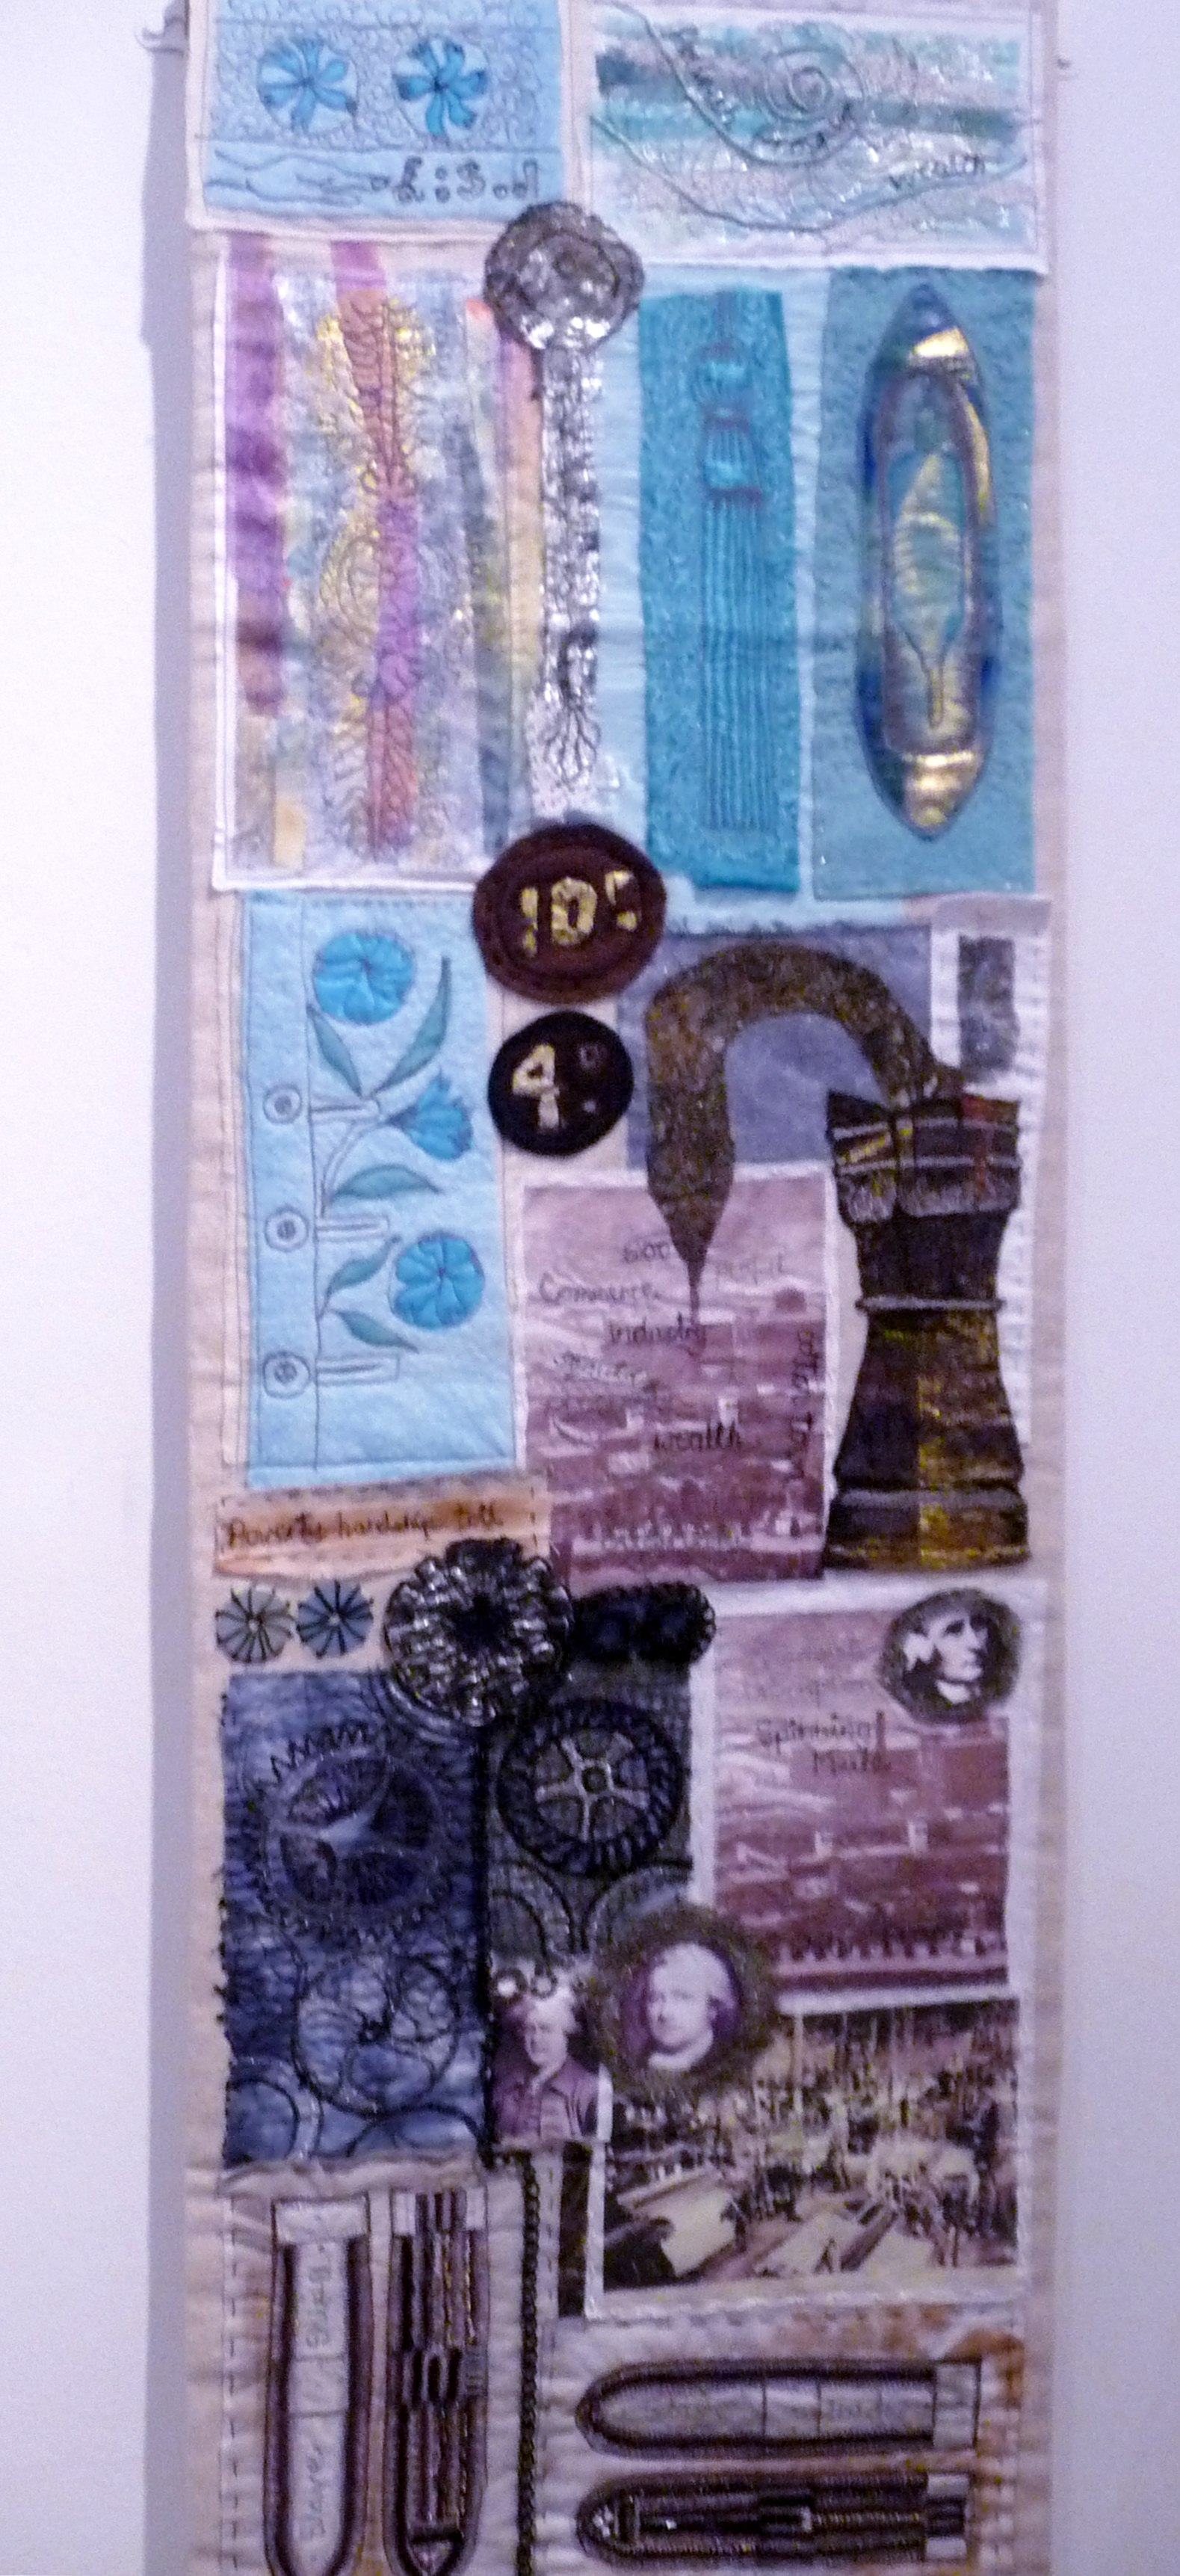 THE MILL AGE by Brenda Brown, mixed media with applique